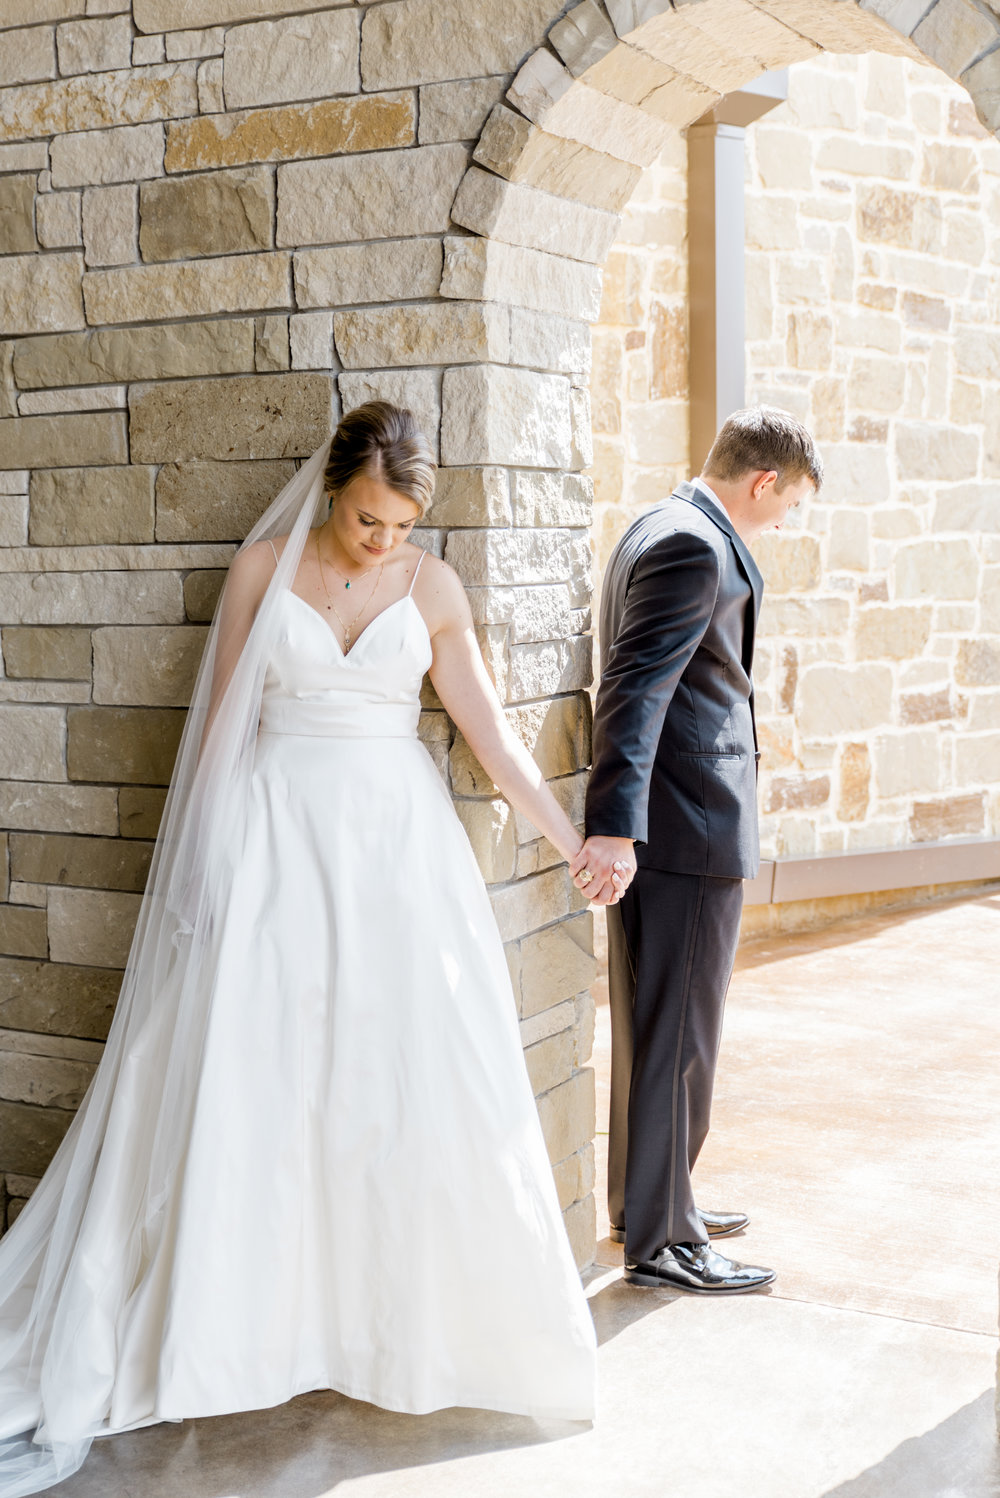 First touch wedding day bride and groom coordinator planner designer epoch co canyonwood ridge